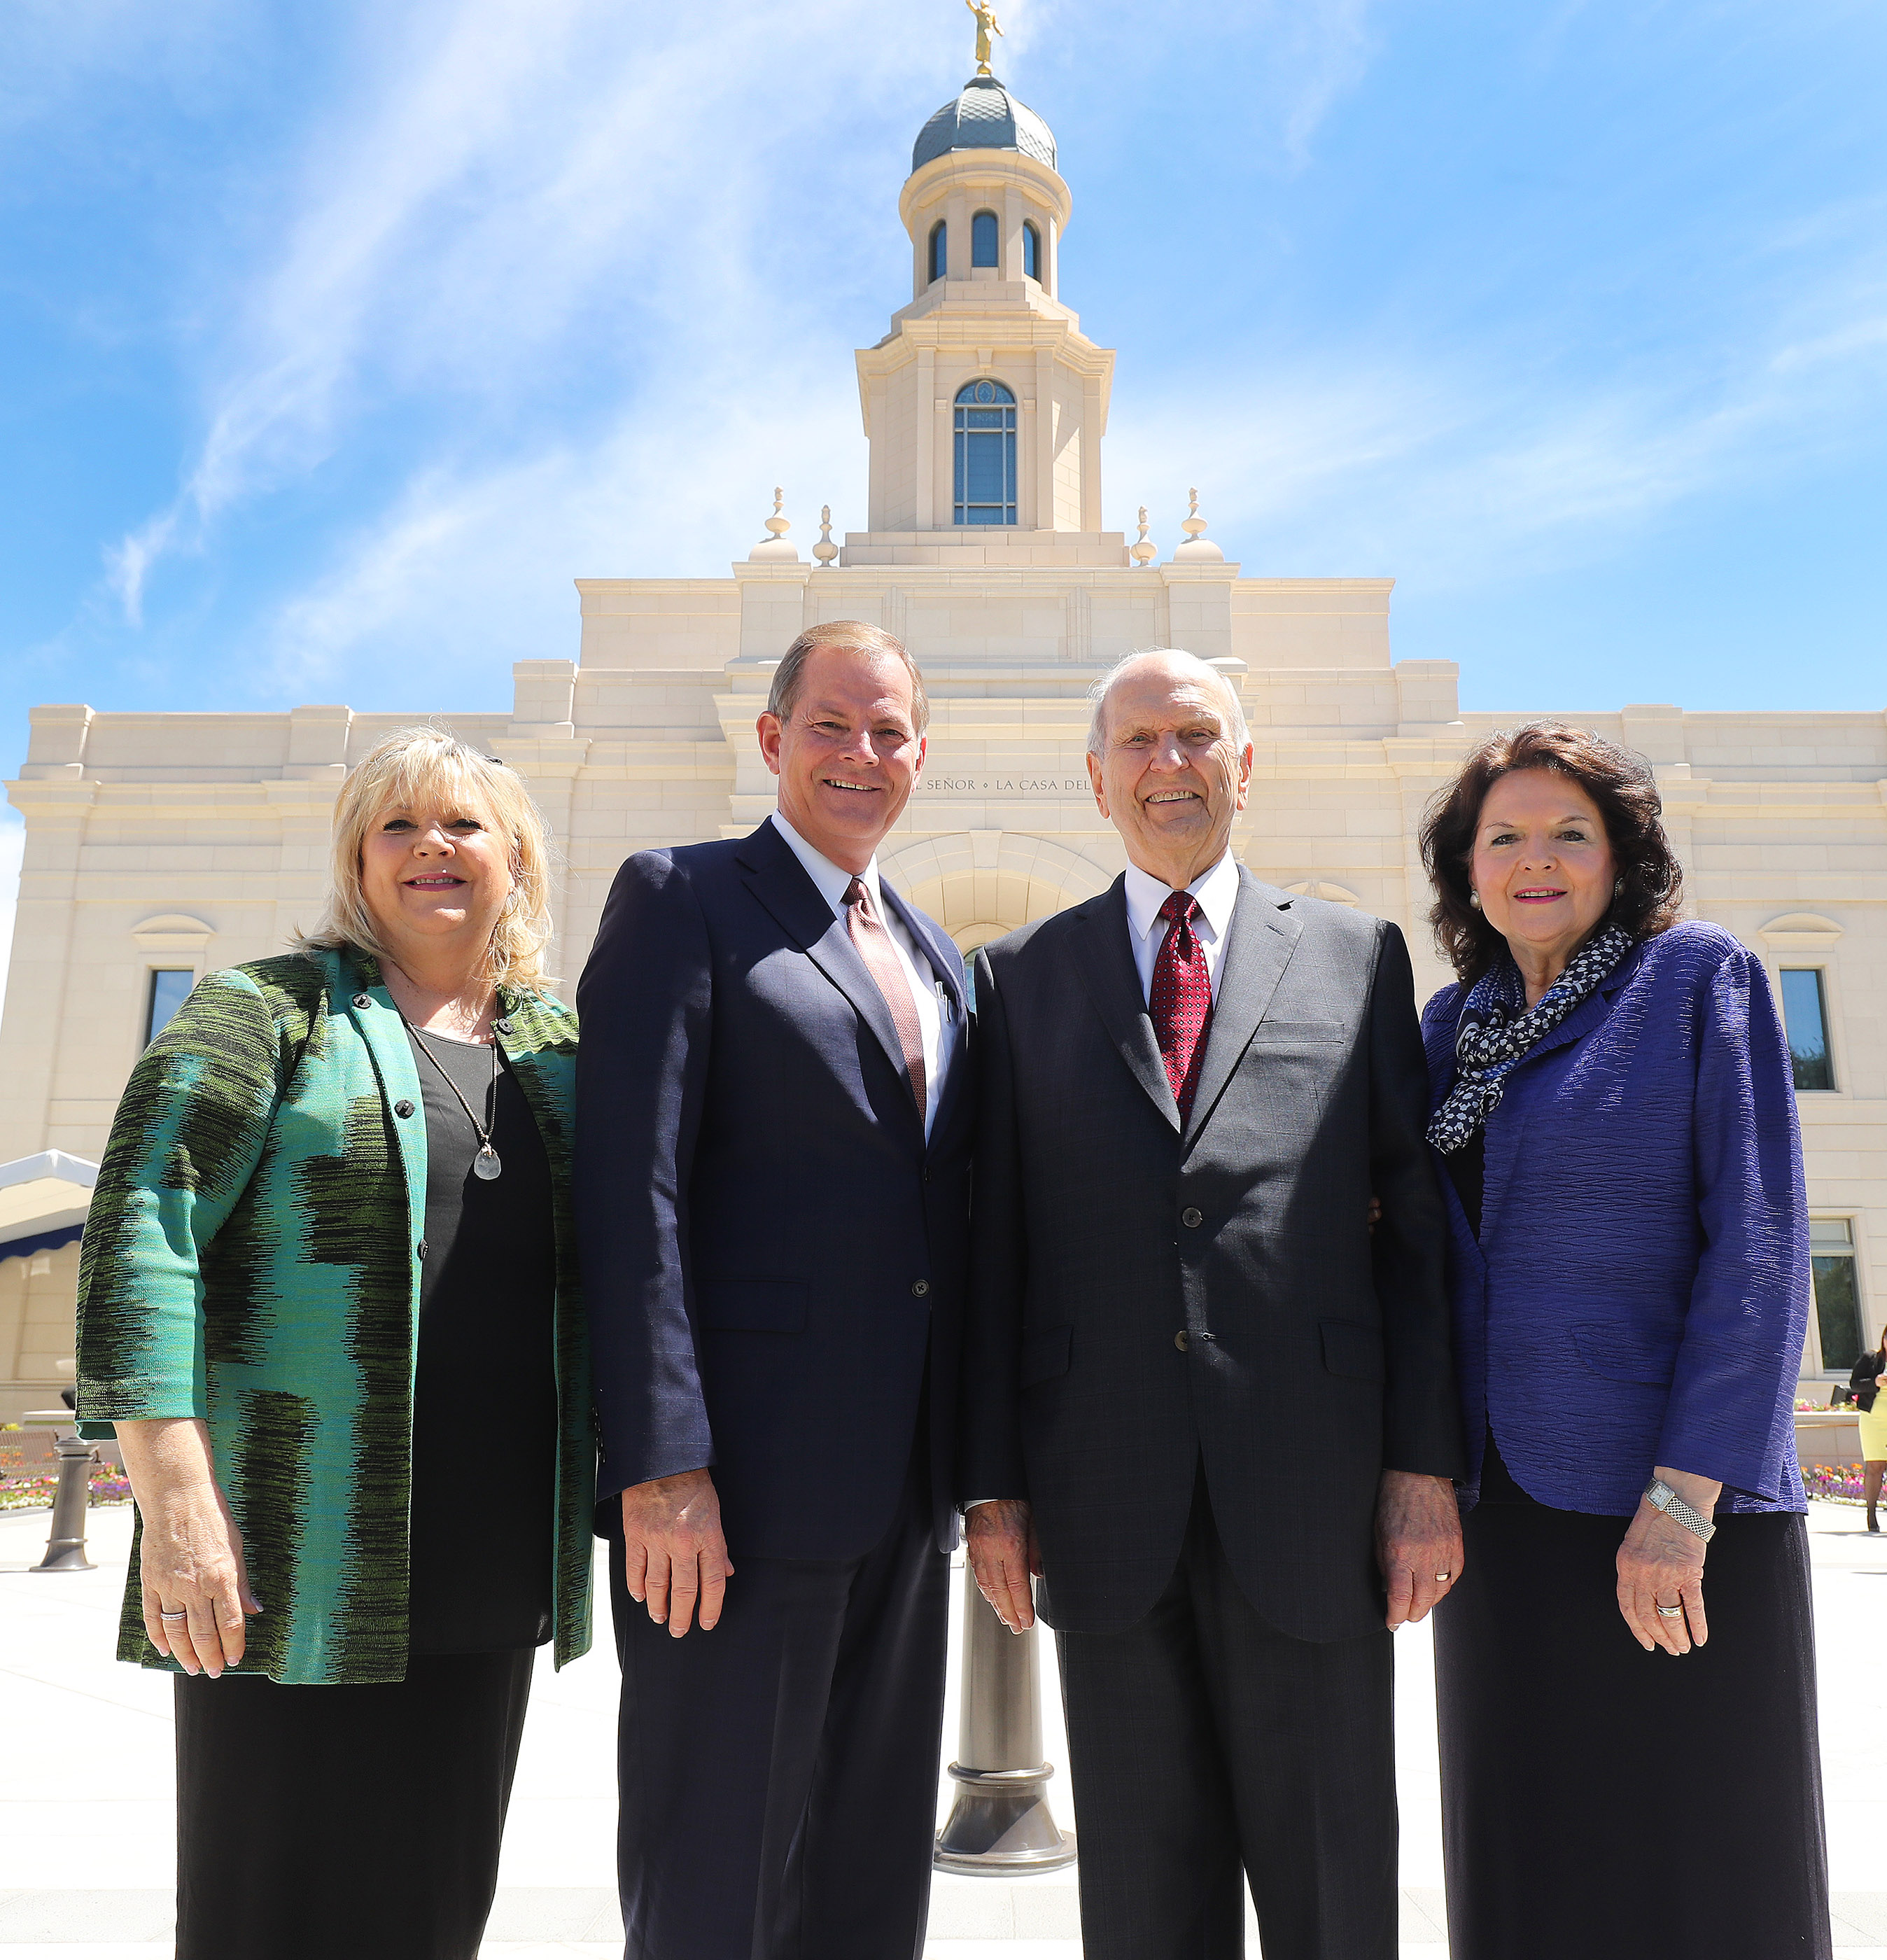 President Russell M. Nelson and his wife, Sister Wendy Nelson, and Elder Gary E. Stevenson of the Quorum of the Twelve Apostles and his wife, Sister Lesa Stevenson, stand near the temple in Concepción, Chile, on Saturday, Oct. 27, 2018.